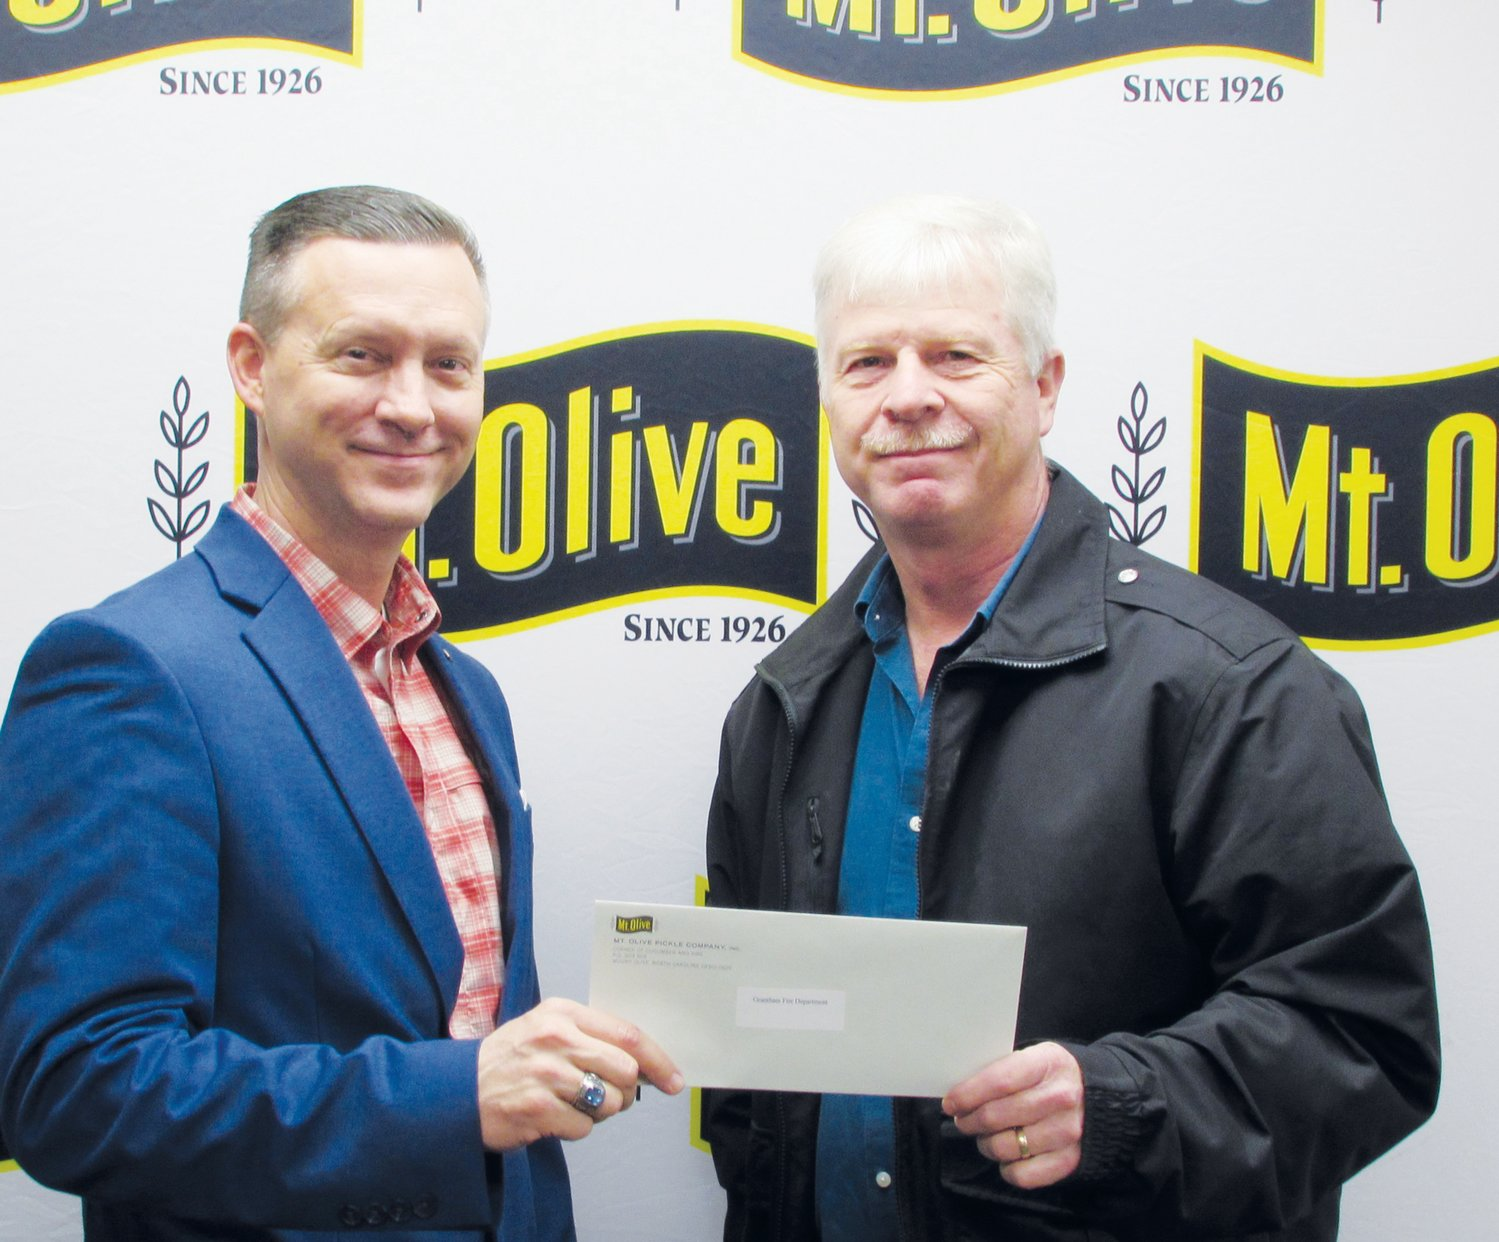 Mt. Olive Pickle Company's Employees Community Fund Chairman Patrick Muston, left, presents a check for $1,775 to Richard Proctor, Chief of Grantham Volunteer Fire Department.